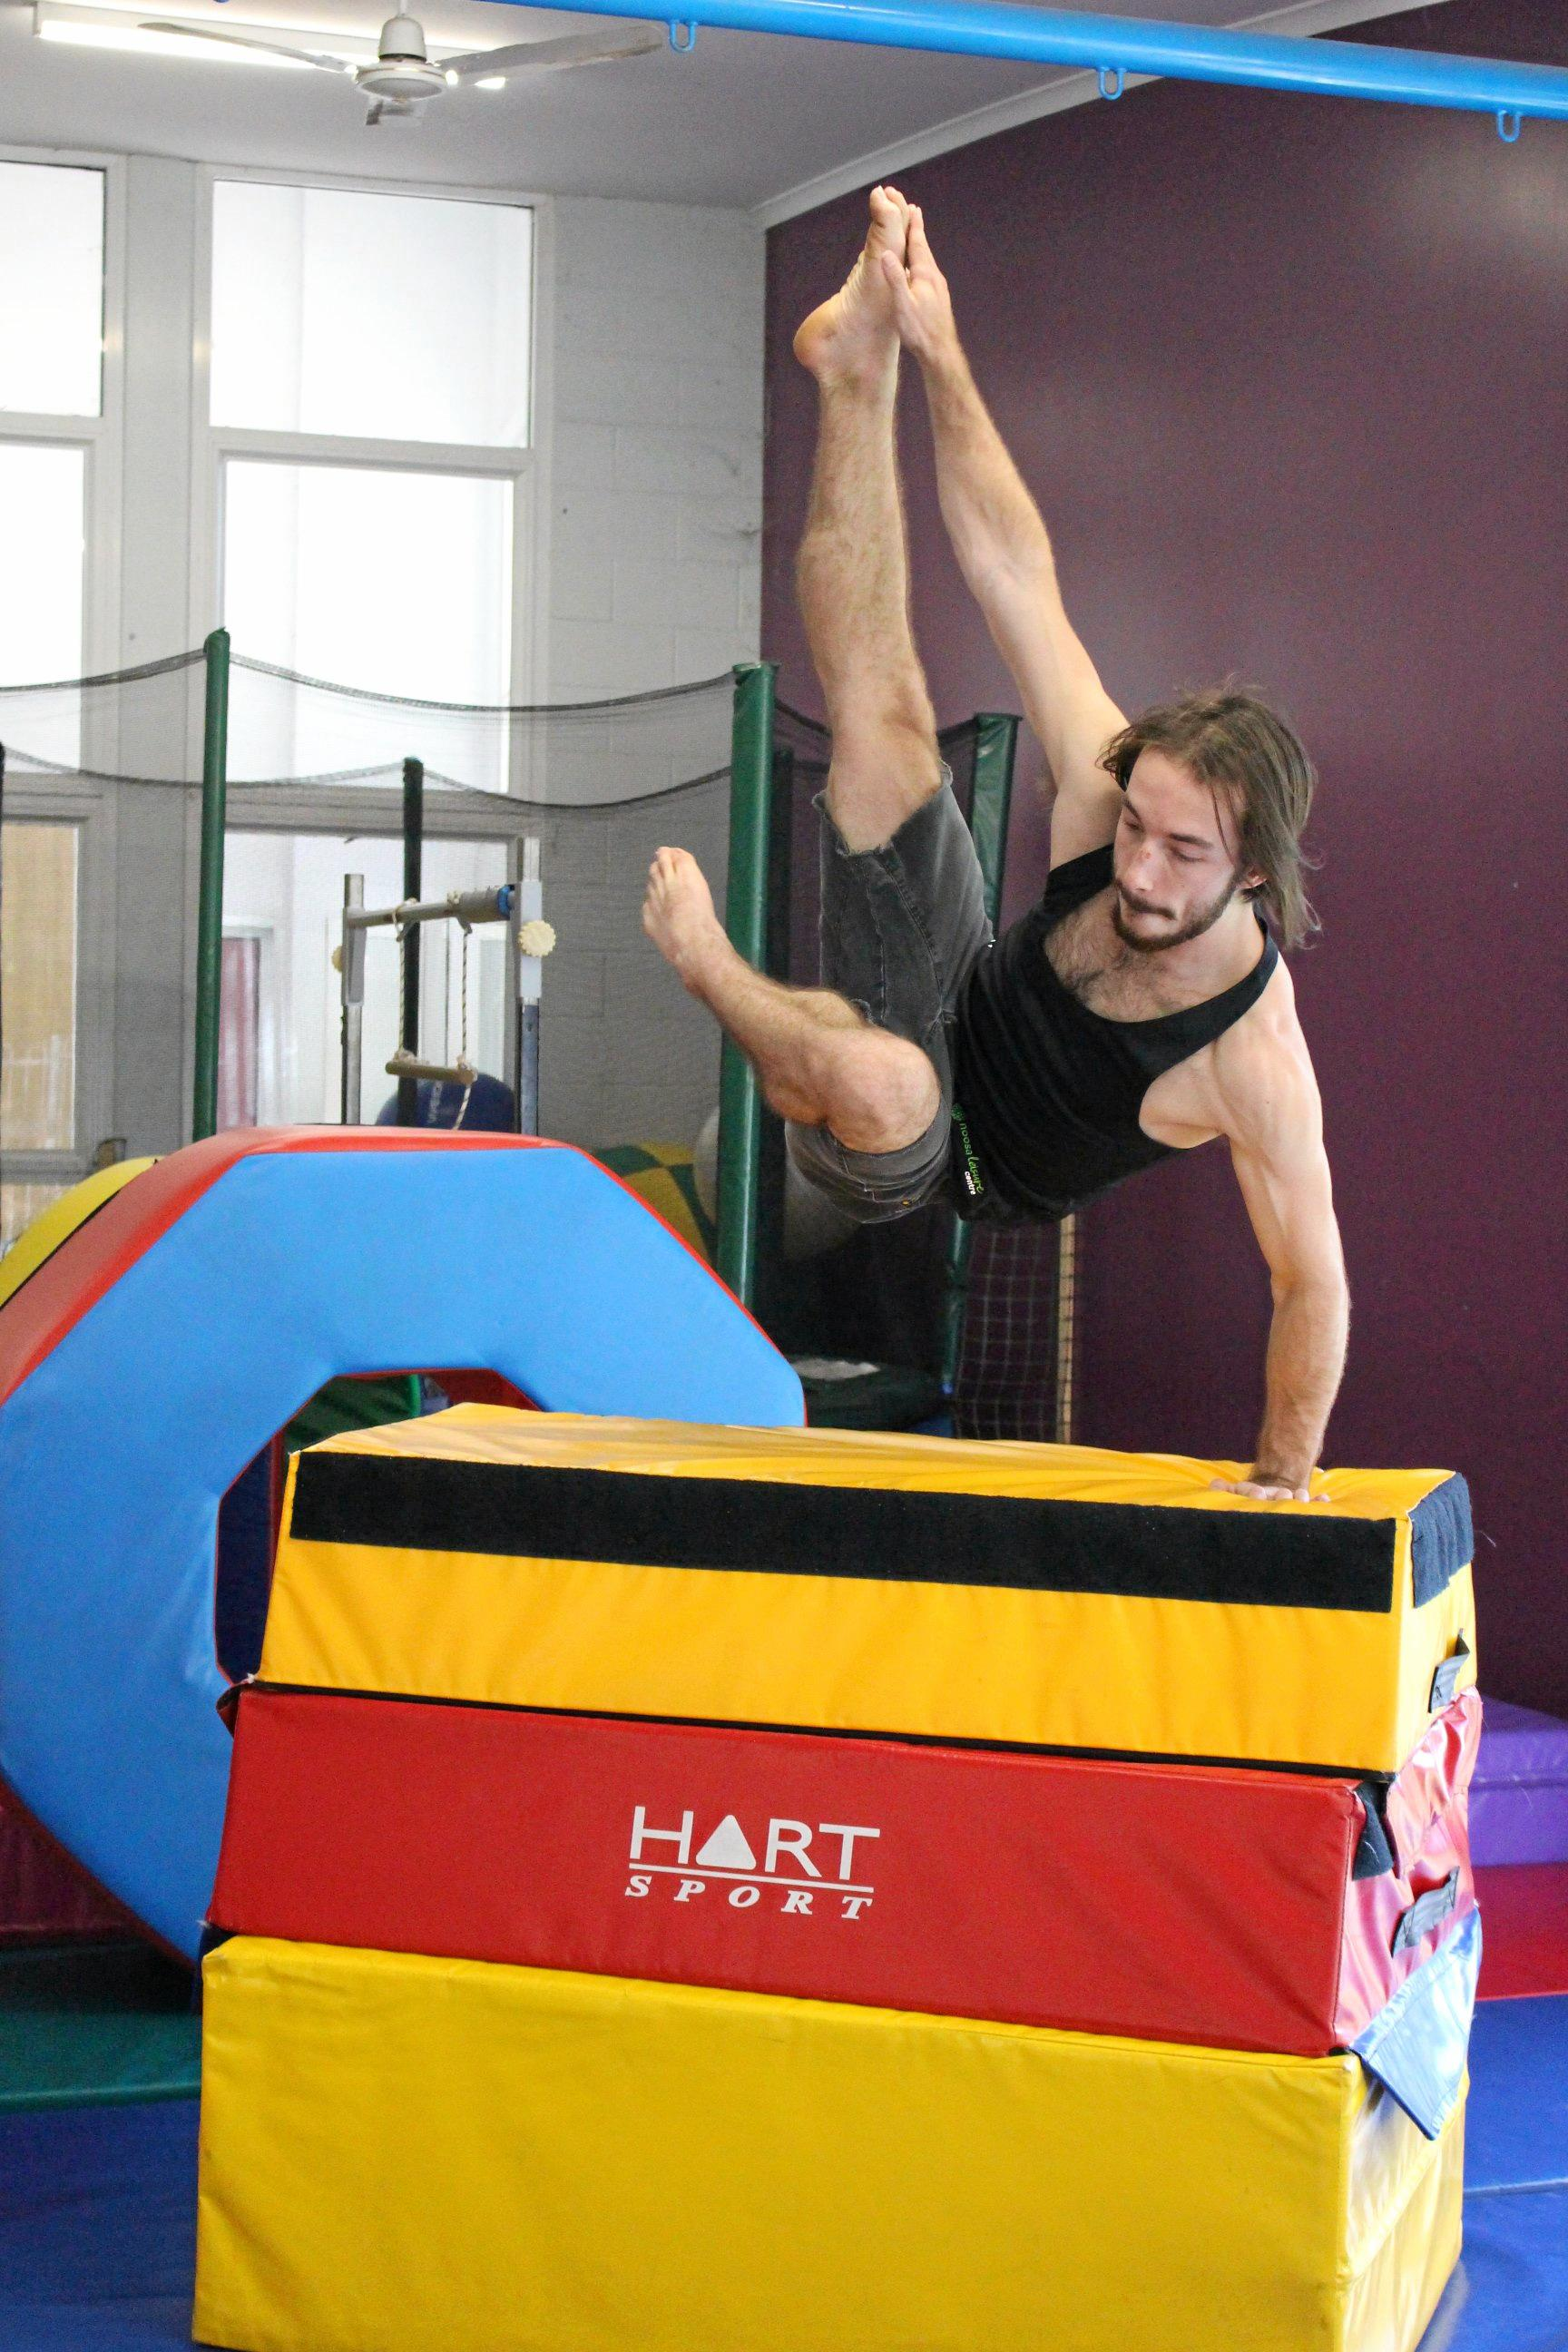 KEEPING FIT: Ryan Collins will lead parkour and acrobatics workshops during the school holidays at Noosa Leisure Centre.